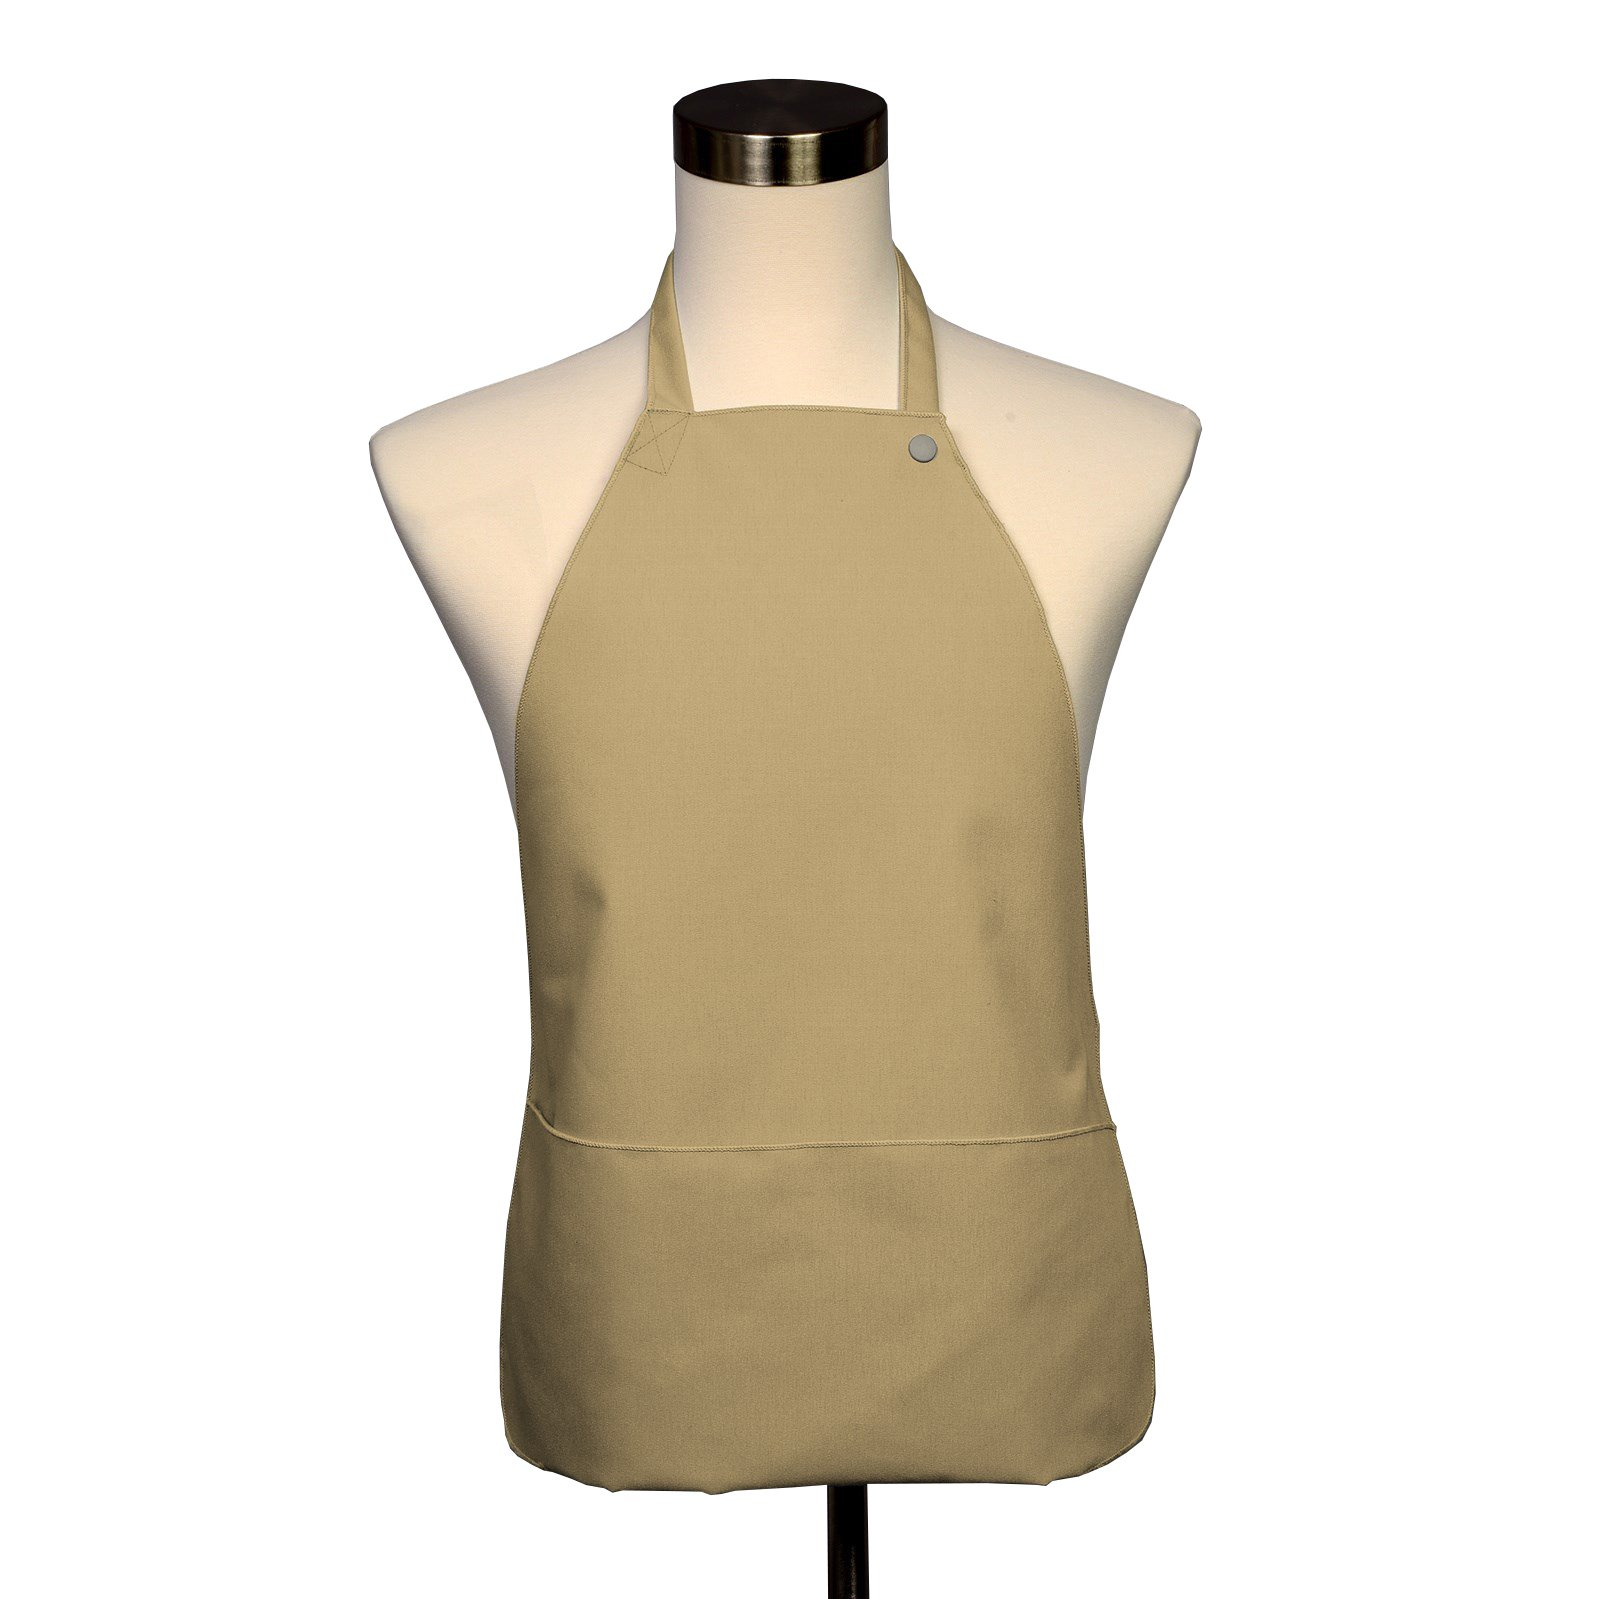 Adult Bib 25 Pack - Covered with Care Assorted Colors Available! (Beige)